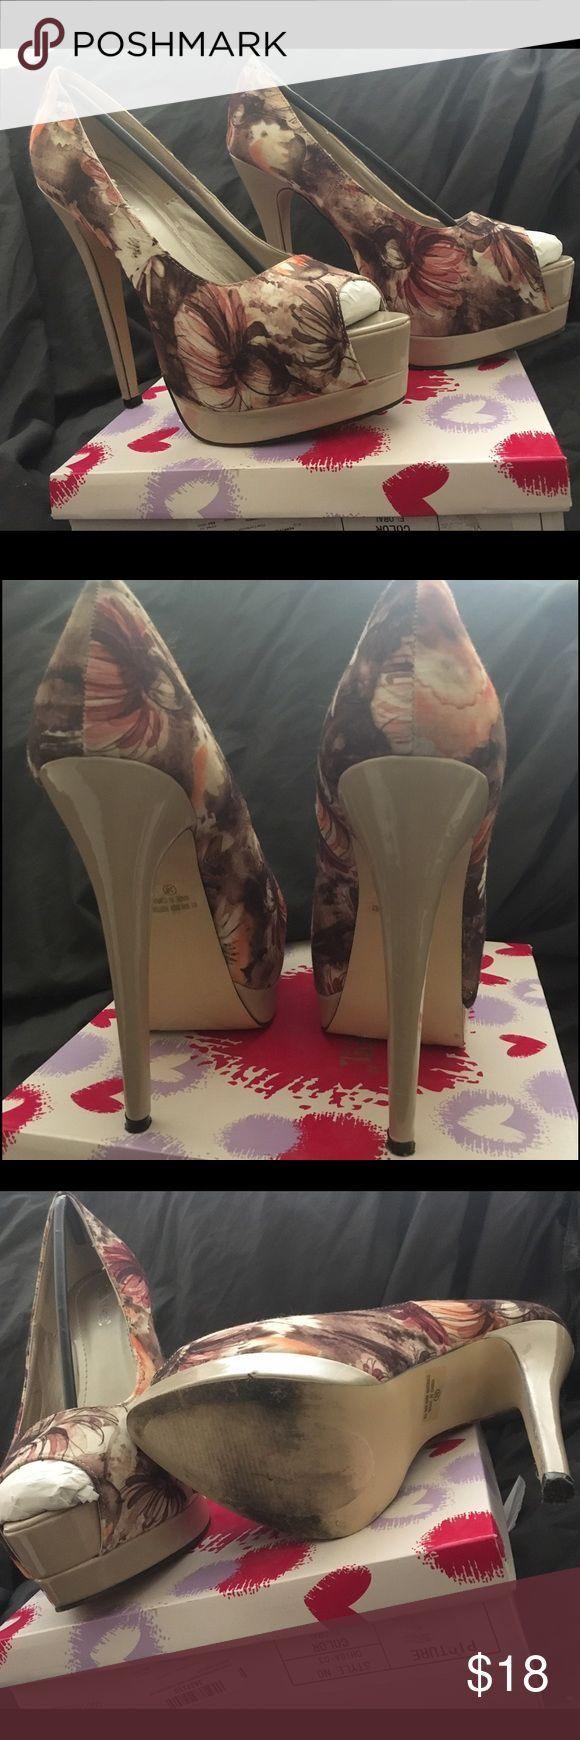 Floral Peep Toe Pump size 10 Floral Peep Toe Pump by Pinky footwear; size 10; gently worn Shoes Heels